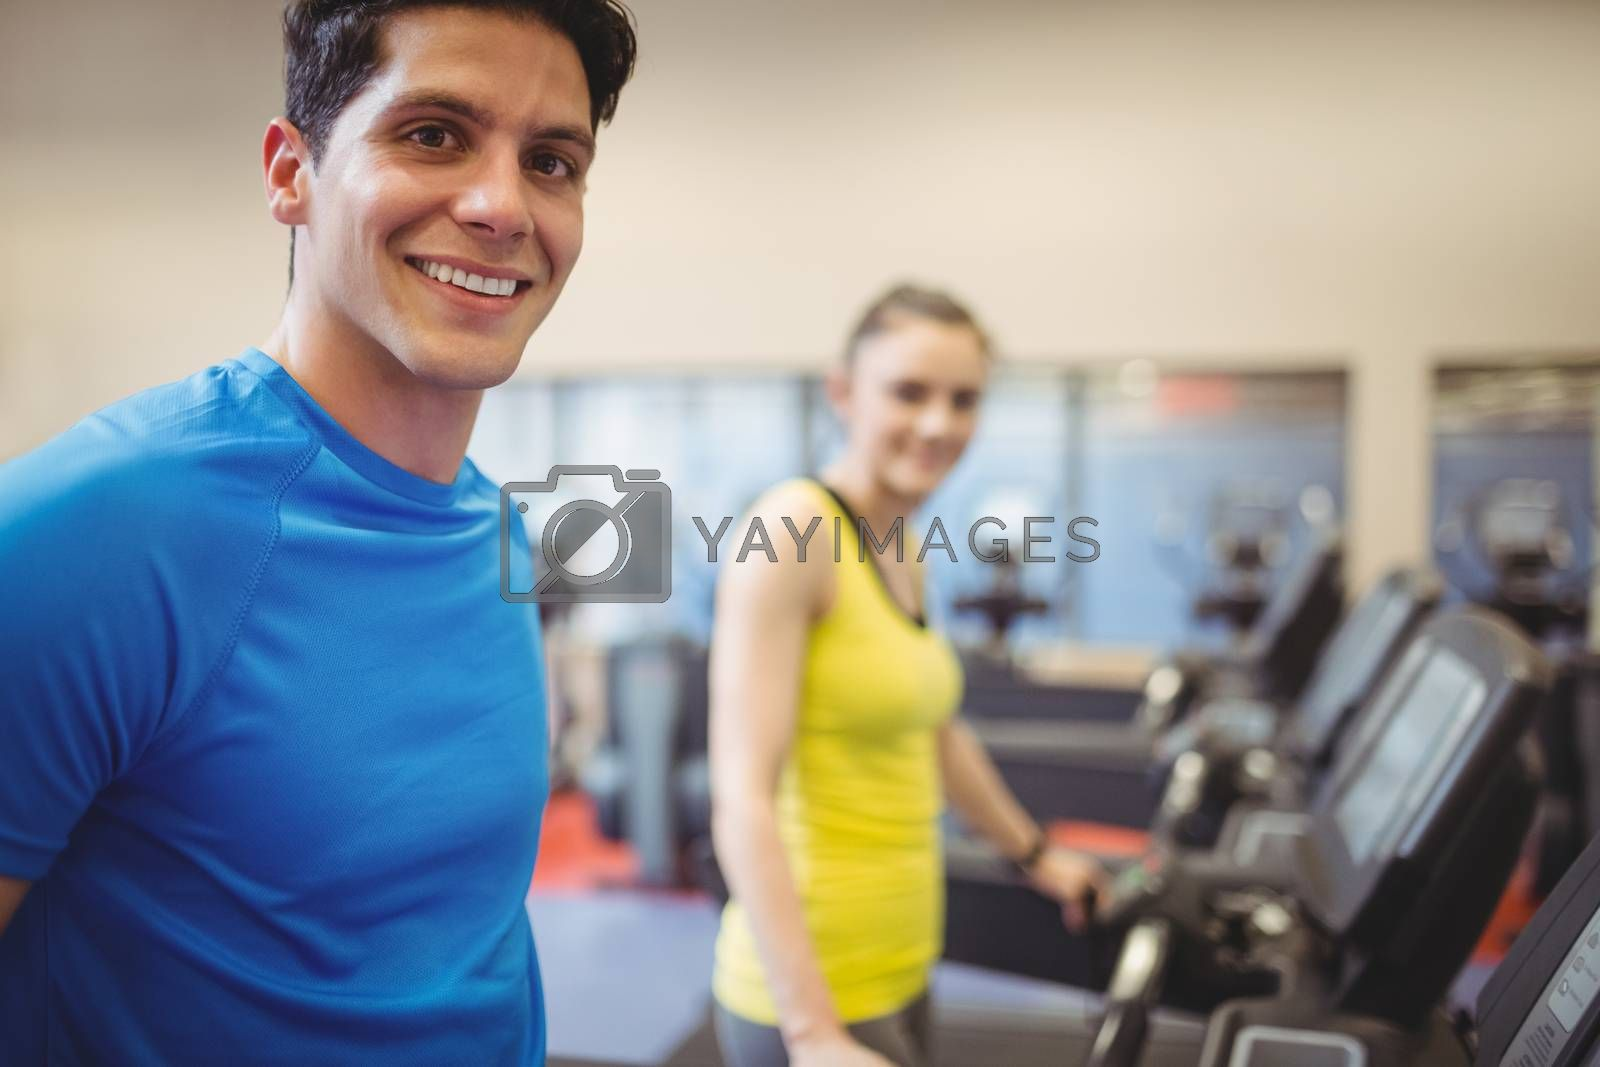 Fit people using the treadmill at the gym